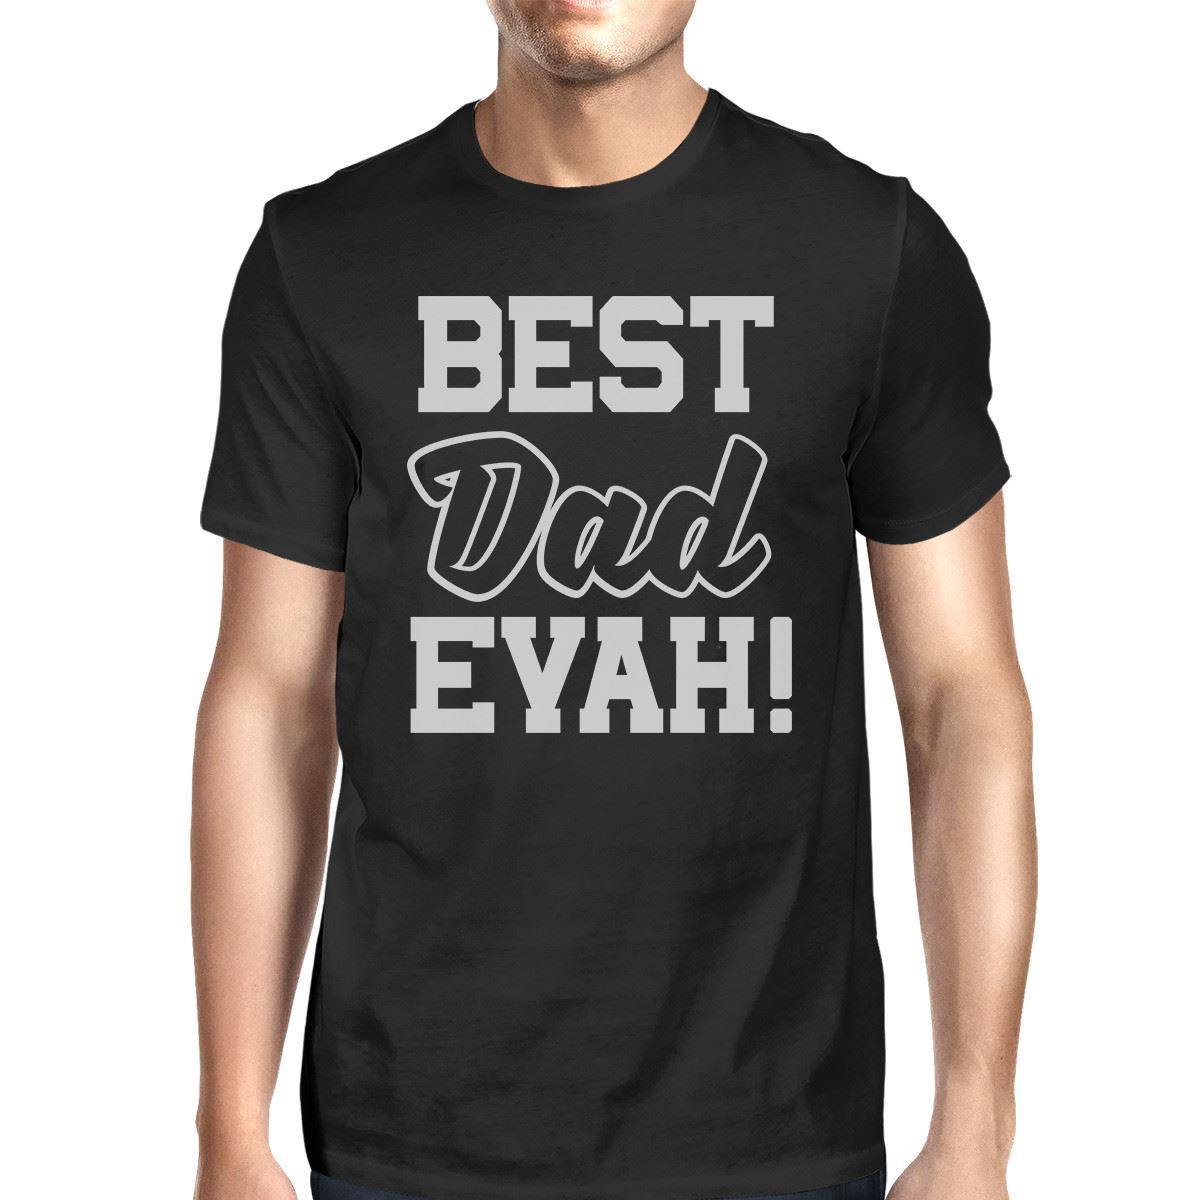 Gildan Best Dad Ever T-Shirt For Men Unique Design Funny Fathers Day Gifts